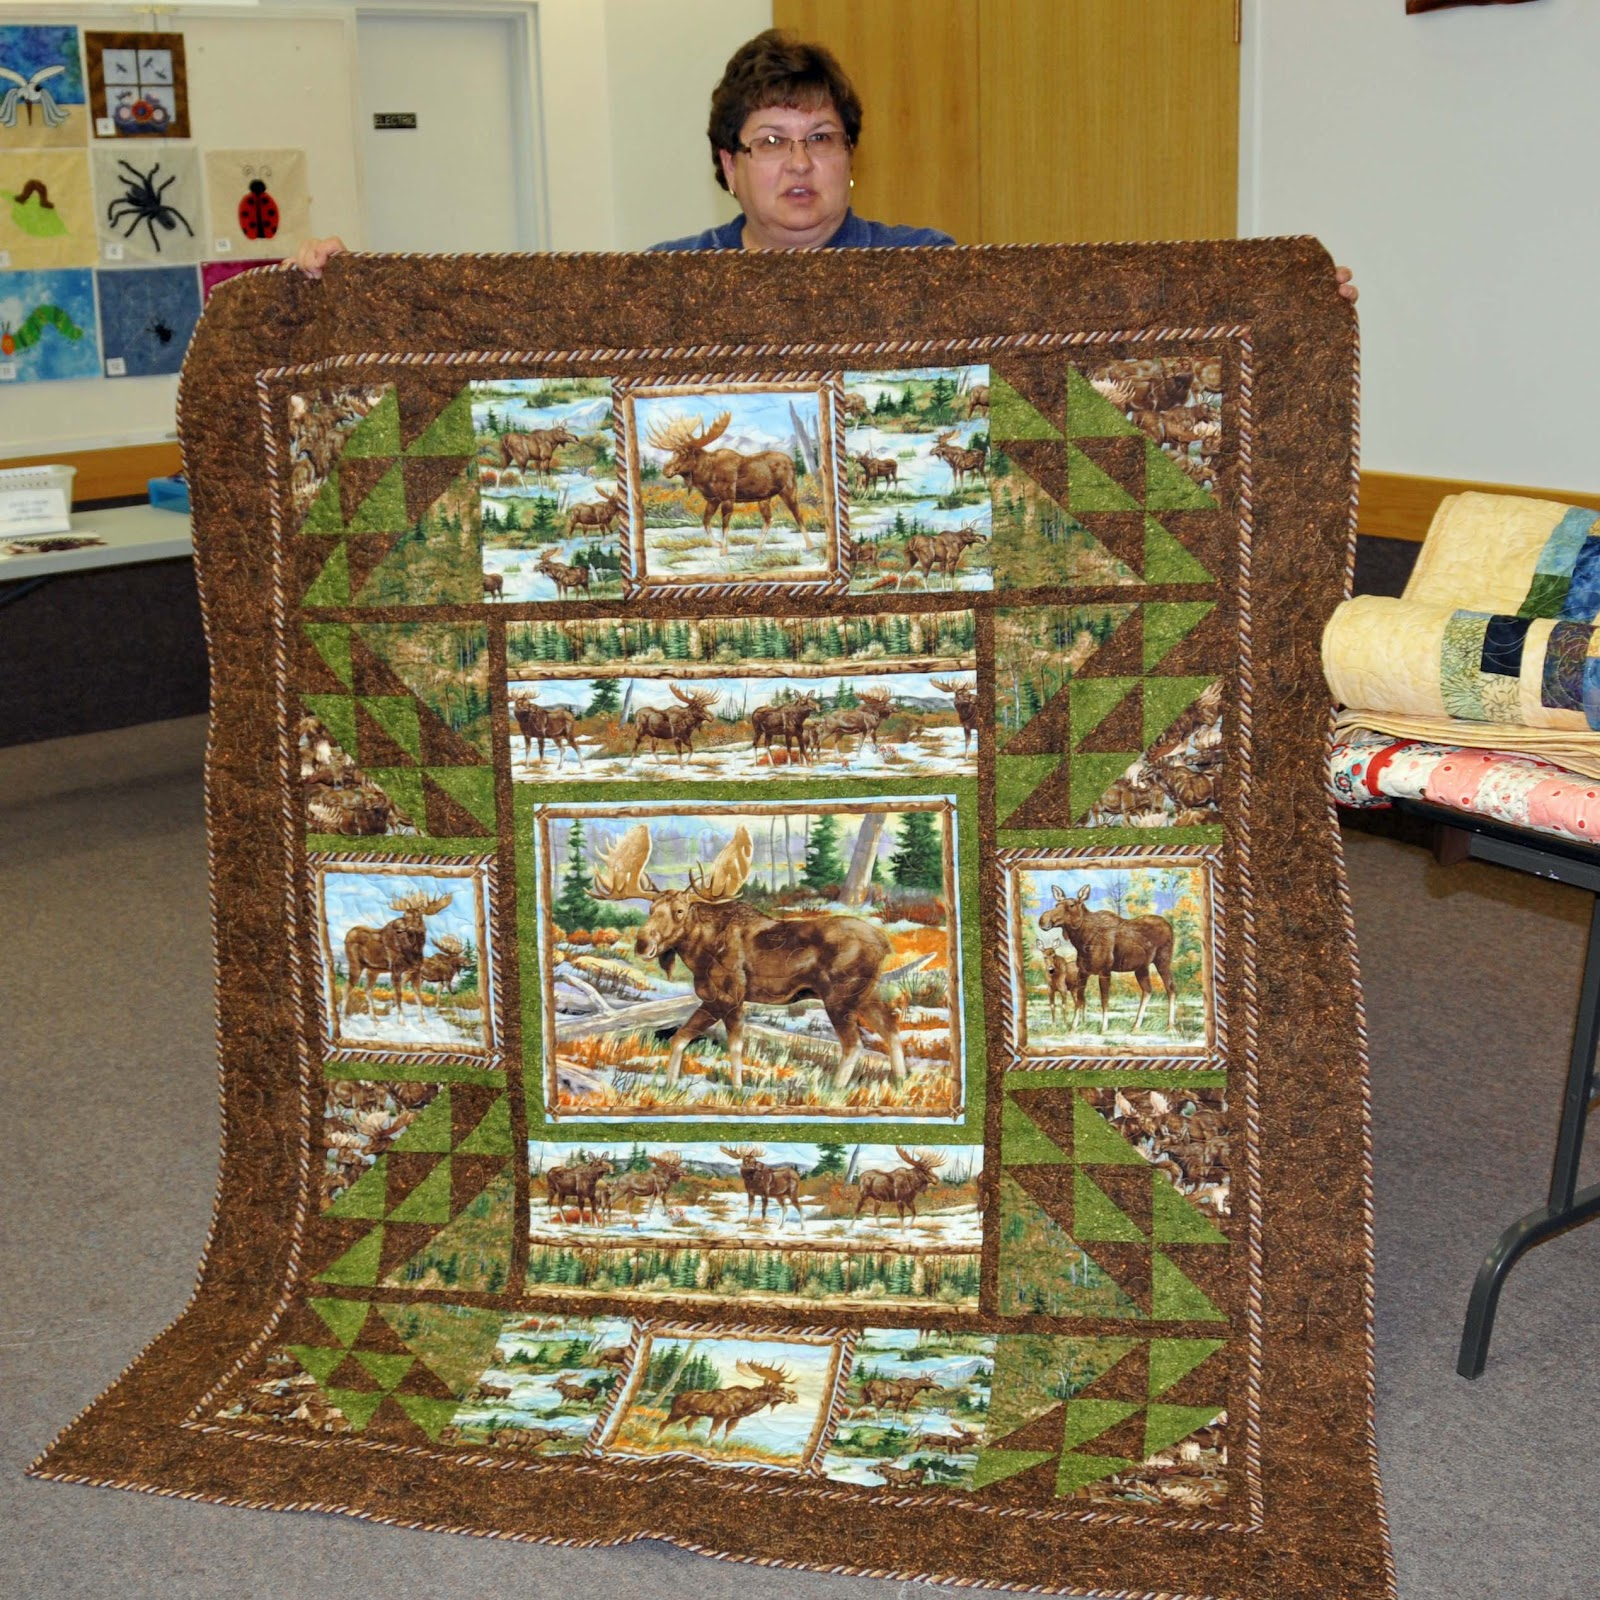 North Star Quilt Guild News May 2012 Meeting Highlights